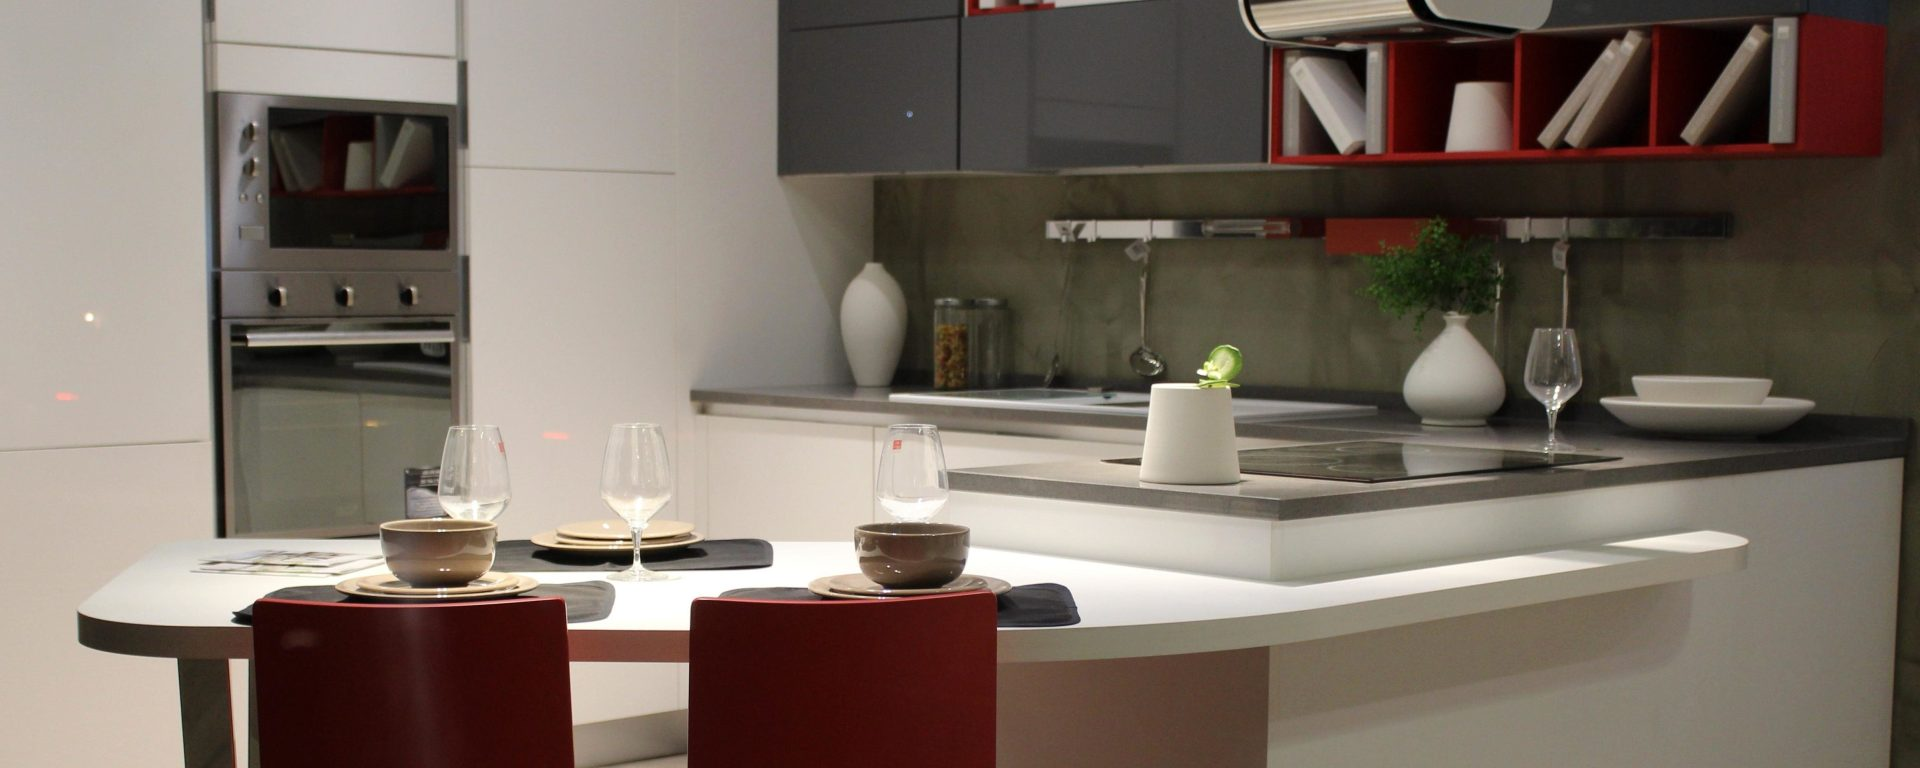 A modern kitchen with a microwave oven. Is the radiation of a microwave oven unhealthy?